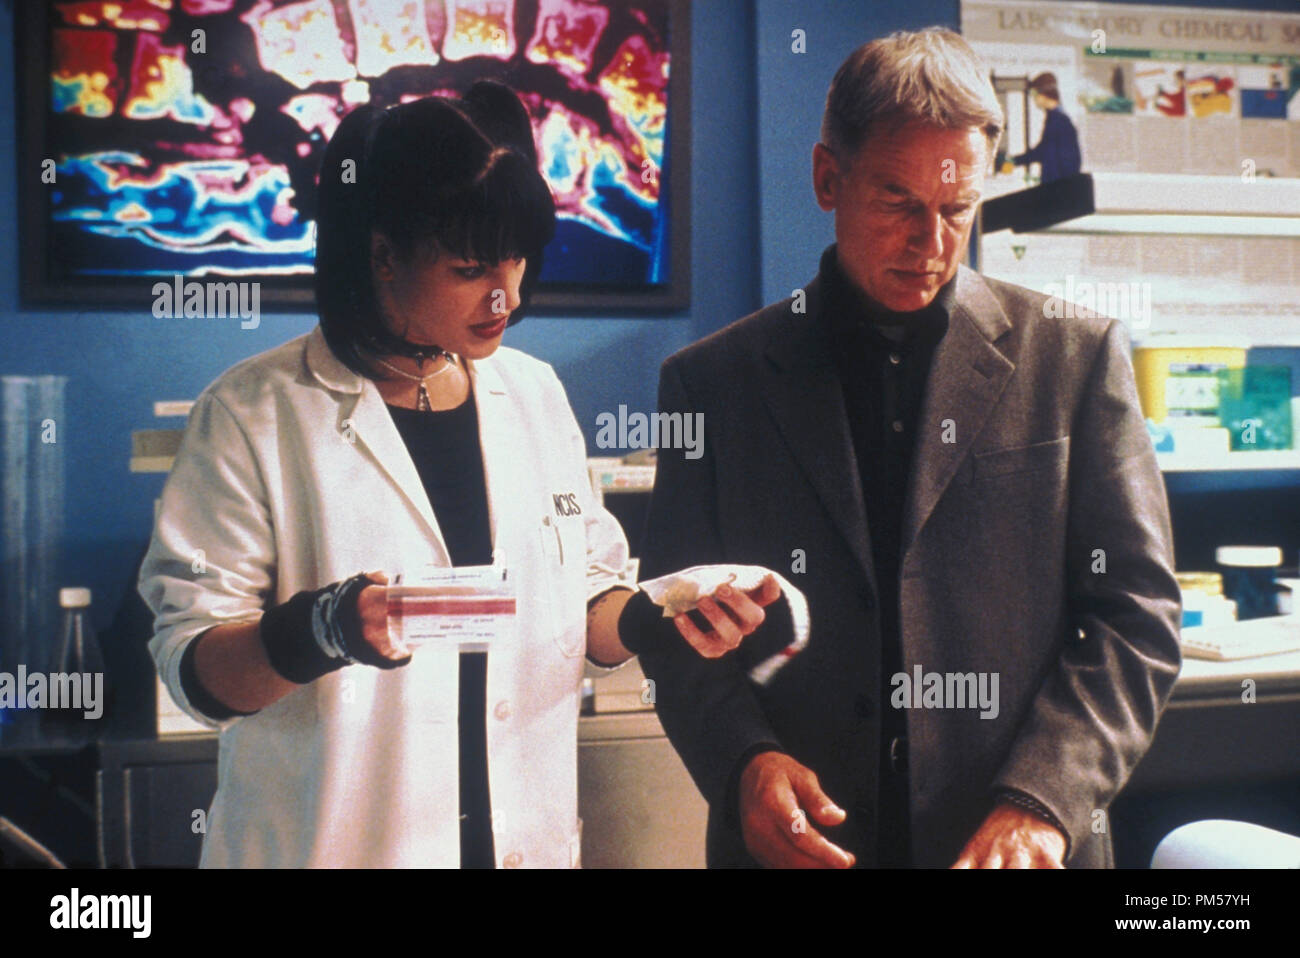 Film Still from 'Navy NCIS' Episode: 'My Other Left Foot' Pauley Perrette, Mark Harmon 2004  File Reference # 30735472THA  For Editorial Use Only -  All Rights Reserved - Stock Image